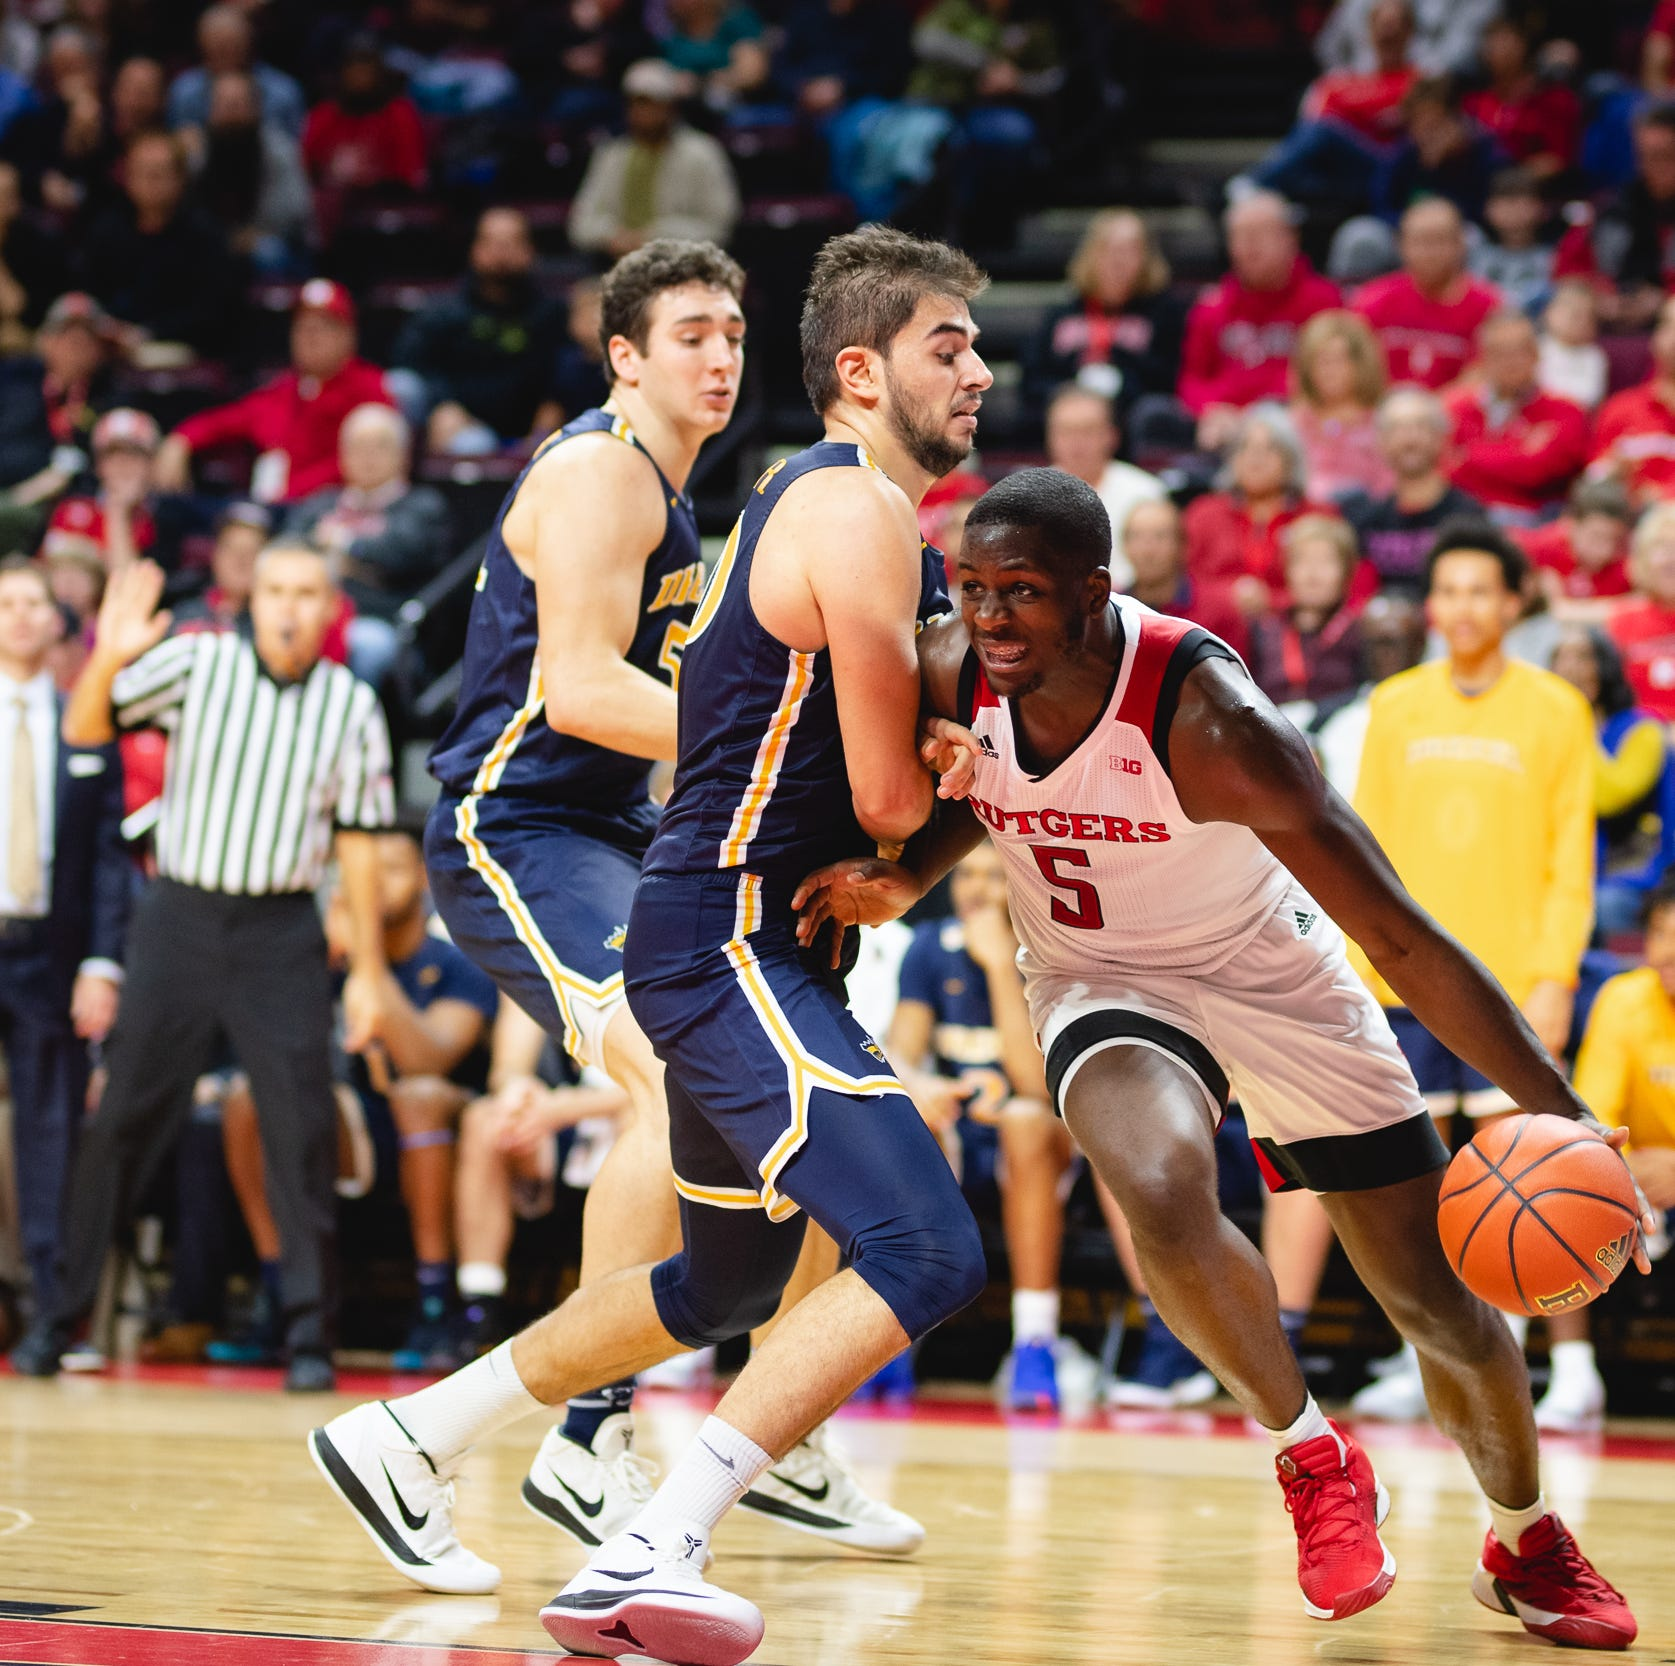 Rutgers basketball: Eugene Omoruyi leads offensive explosion in romp of Drexel